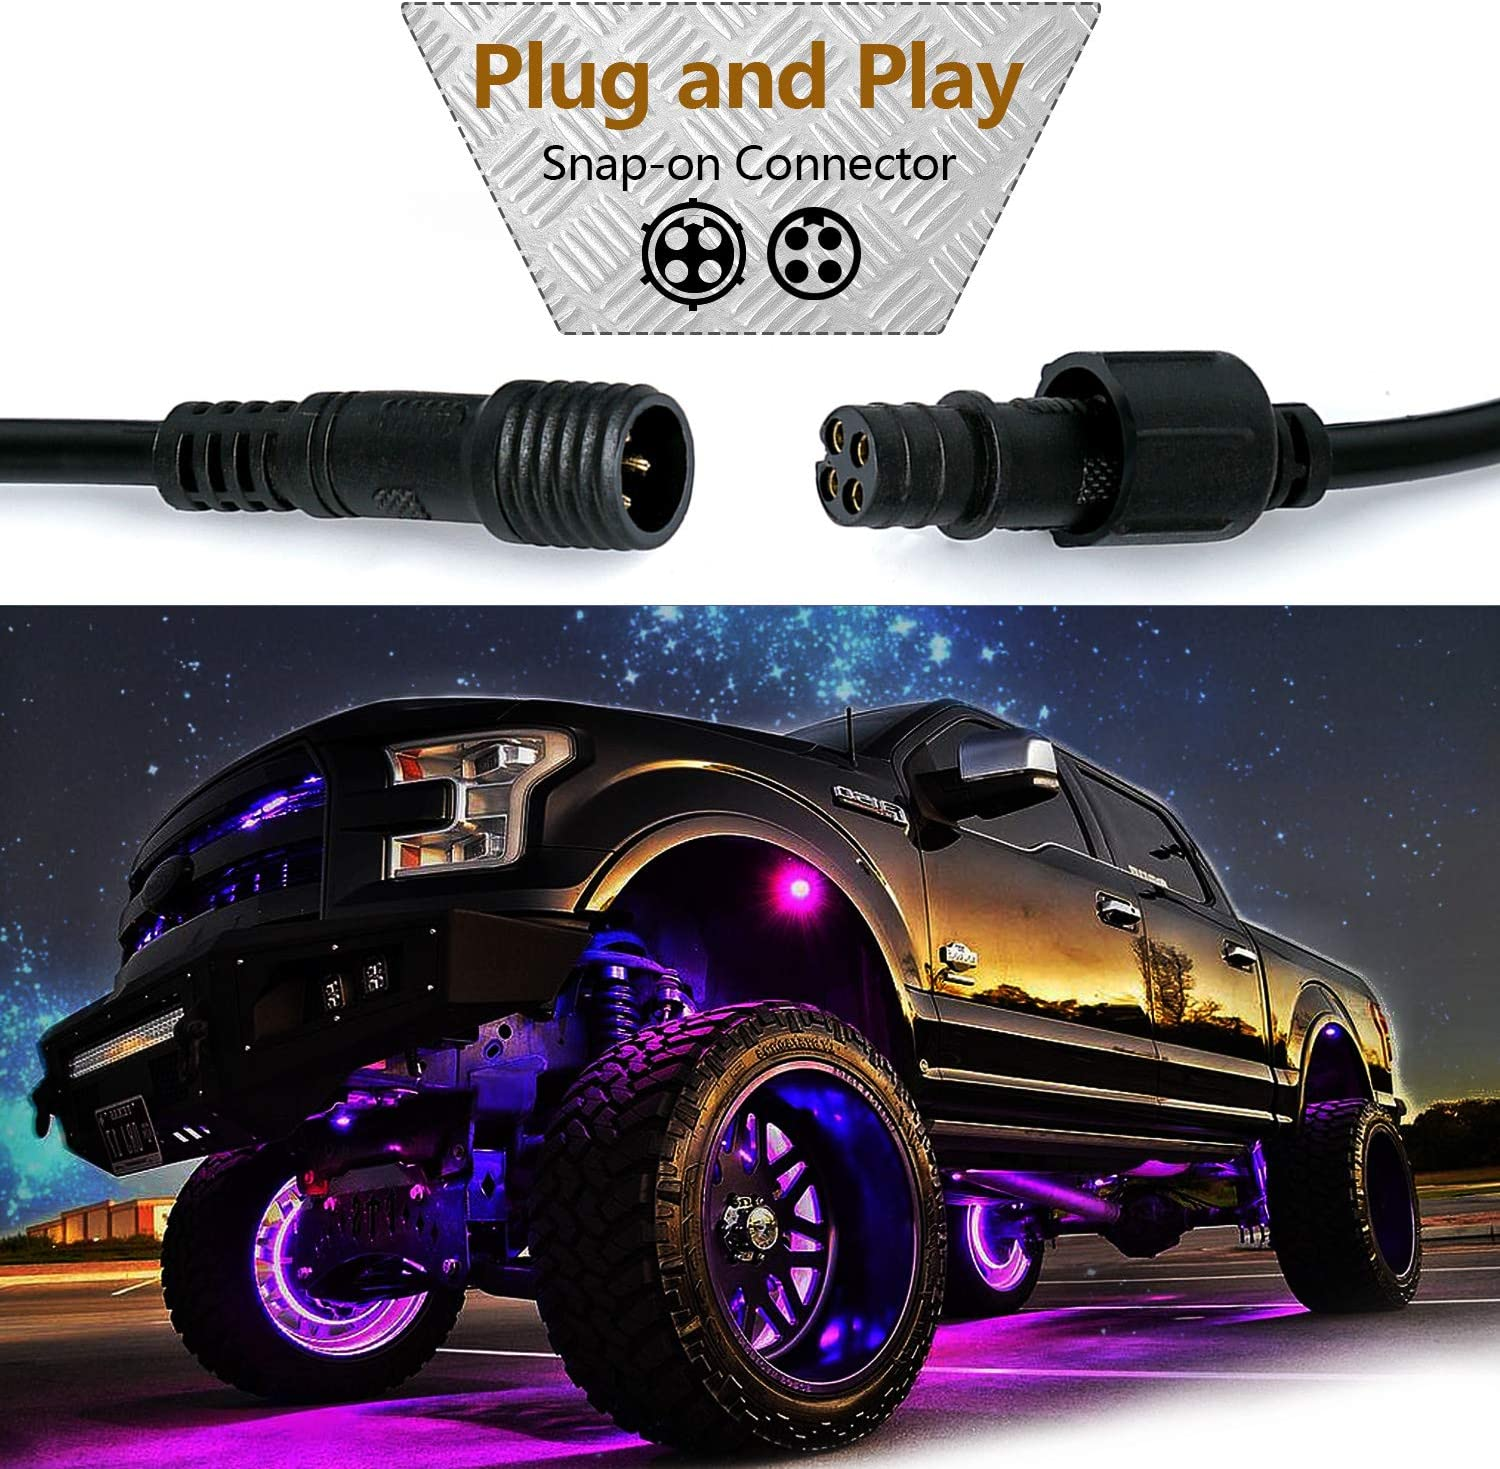 Yvoone-Auto 10 FT 4 Pin RGB LED Rock Lights Extension Cable for 4 /& 6 /& 8 Pods Multi Color Underglow Rock Lights Kits